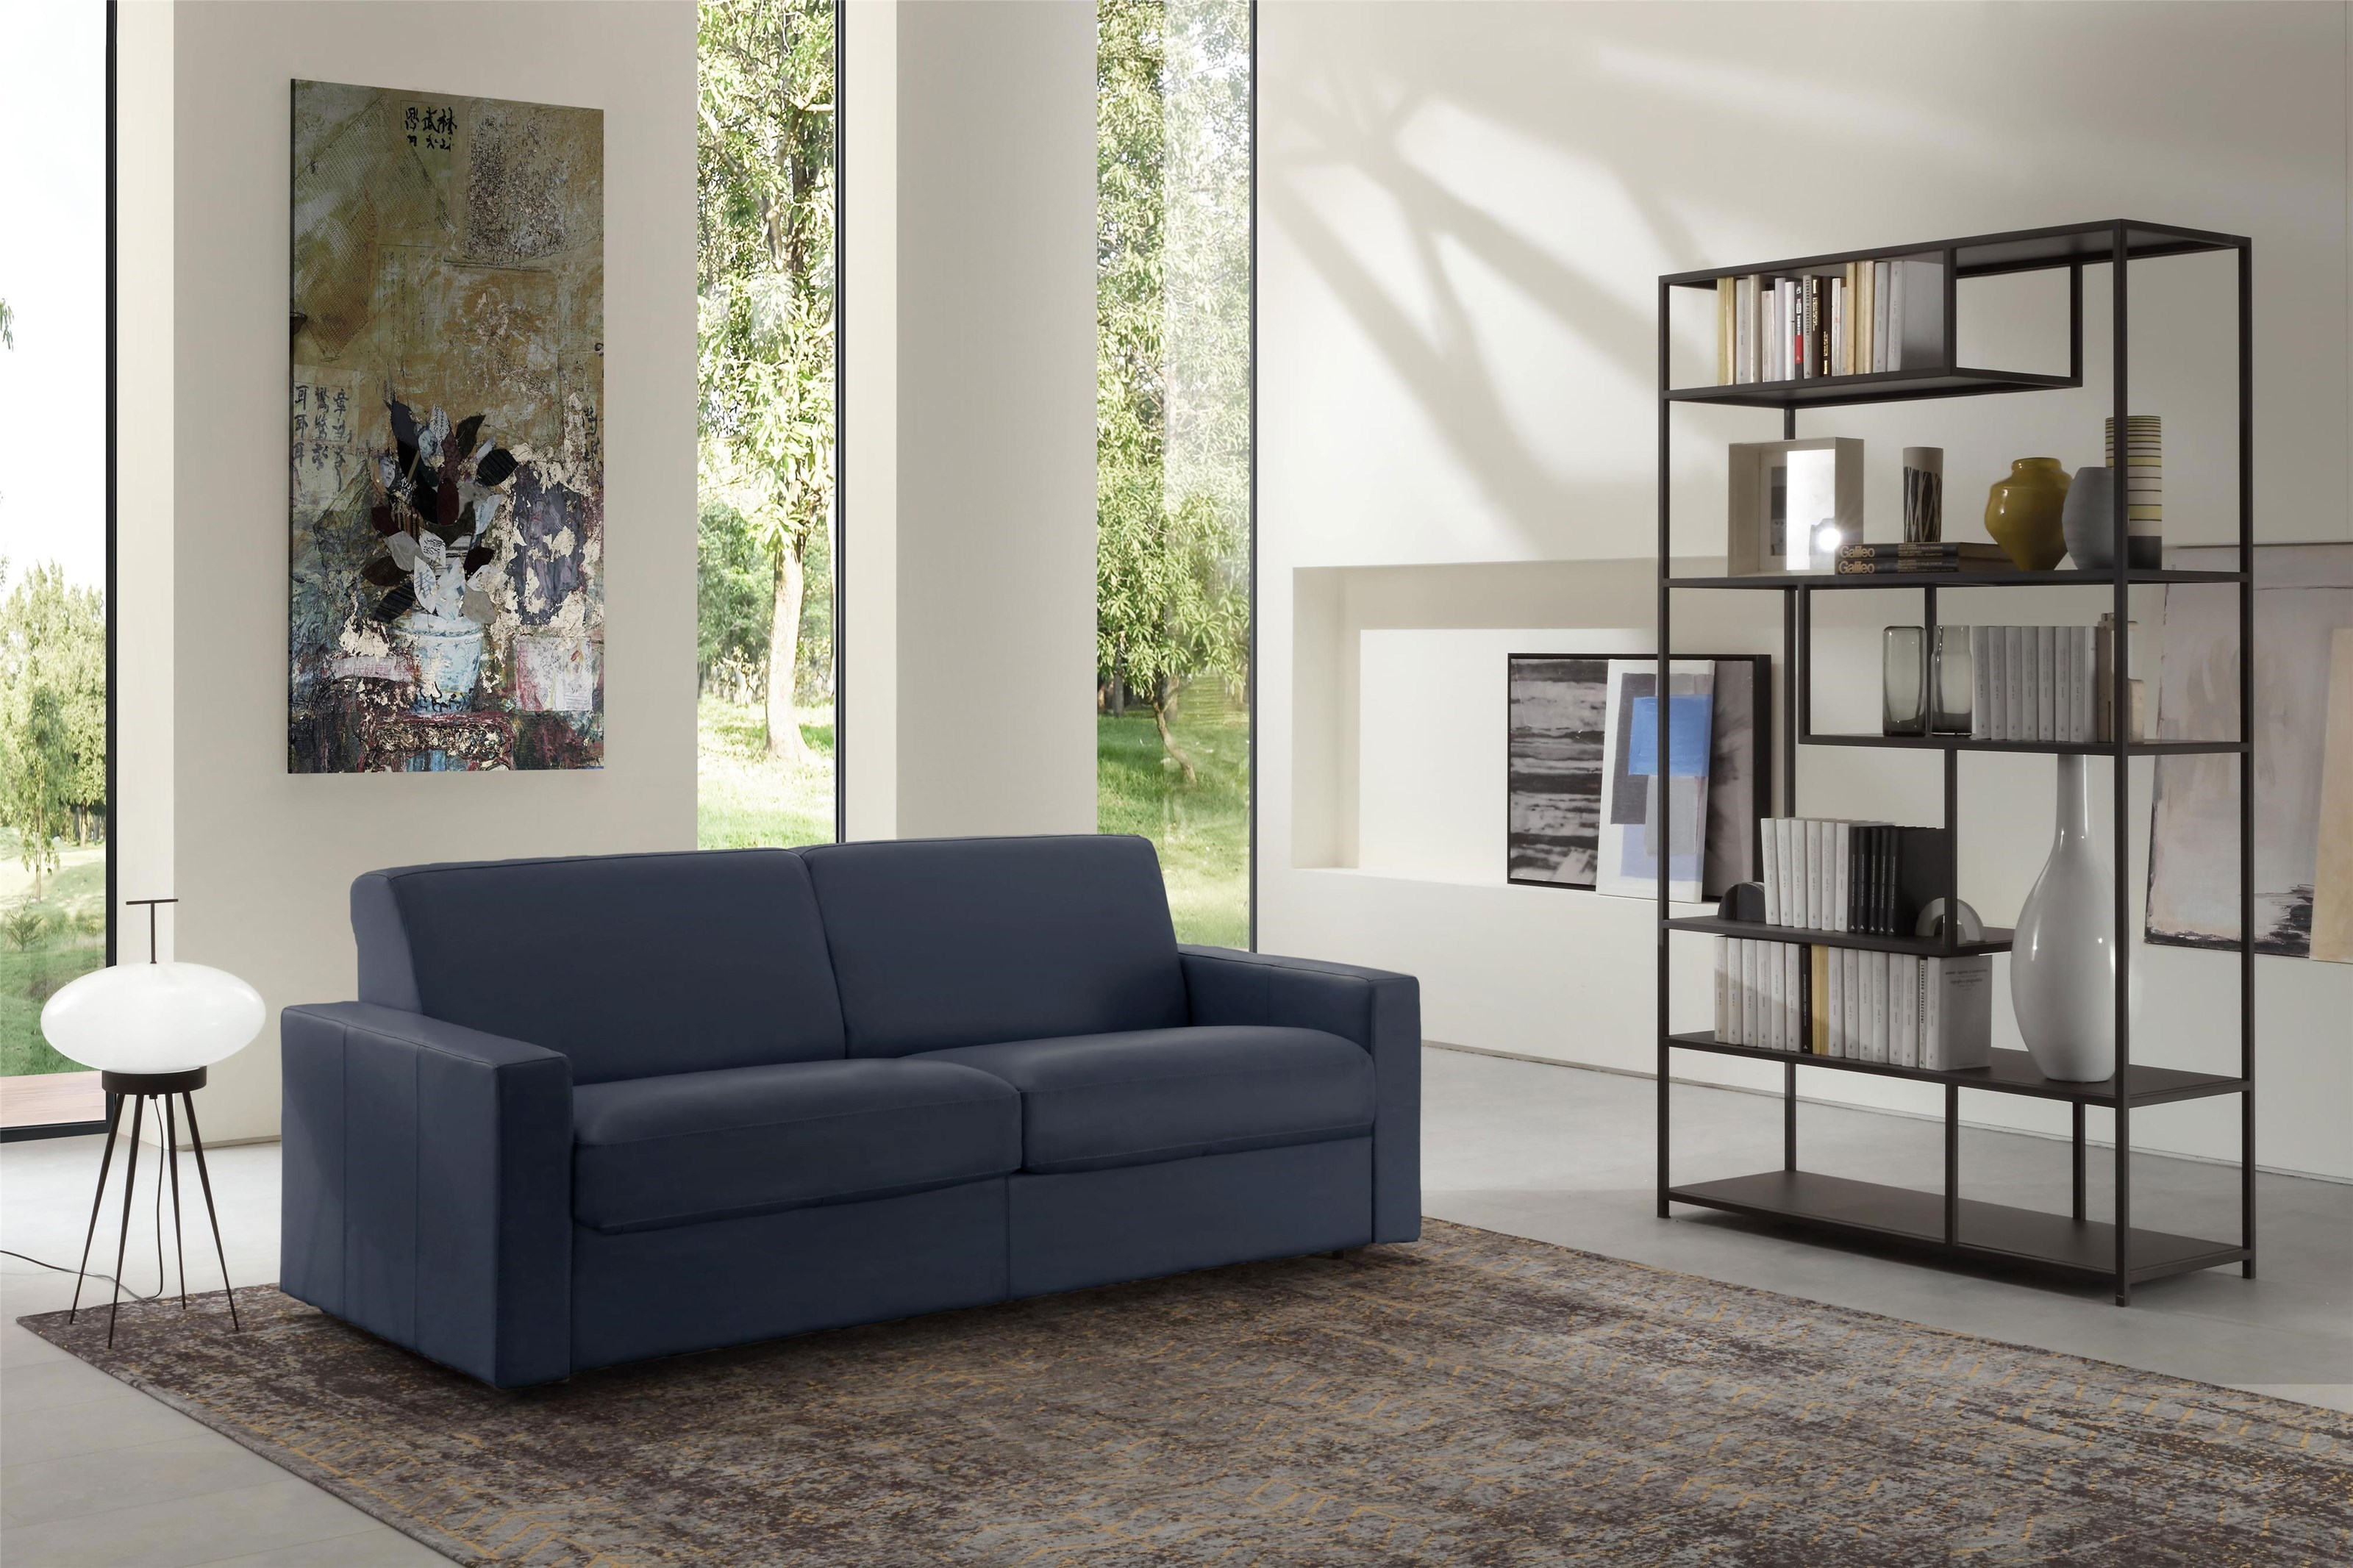 Queen Sleeper Sofa in Blue Leather